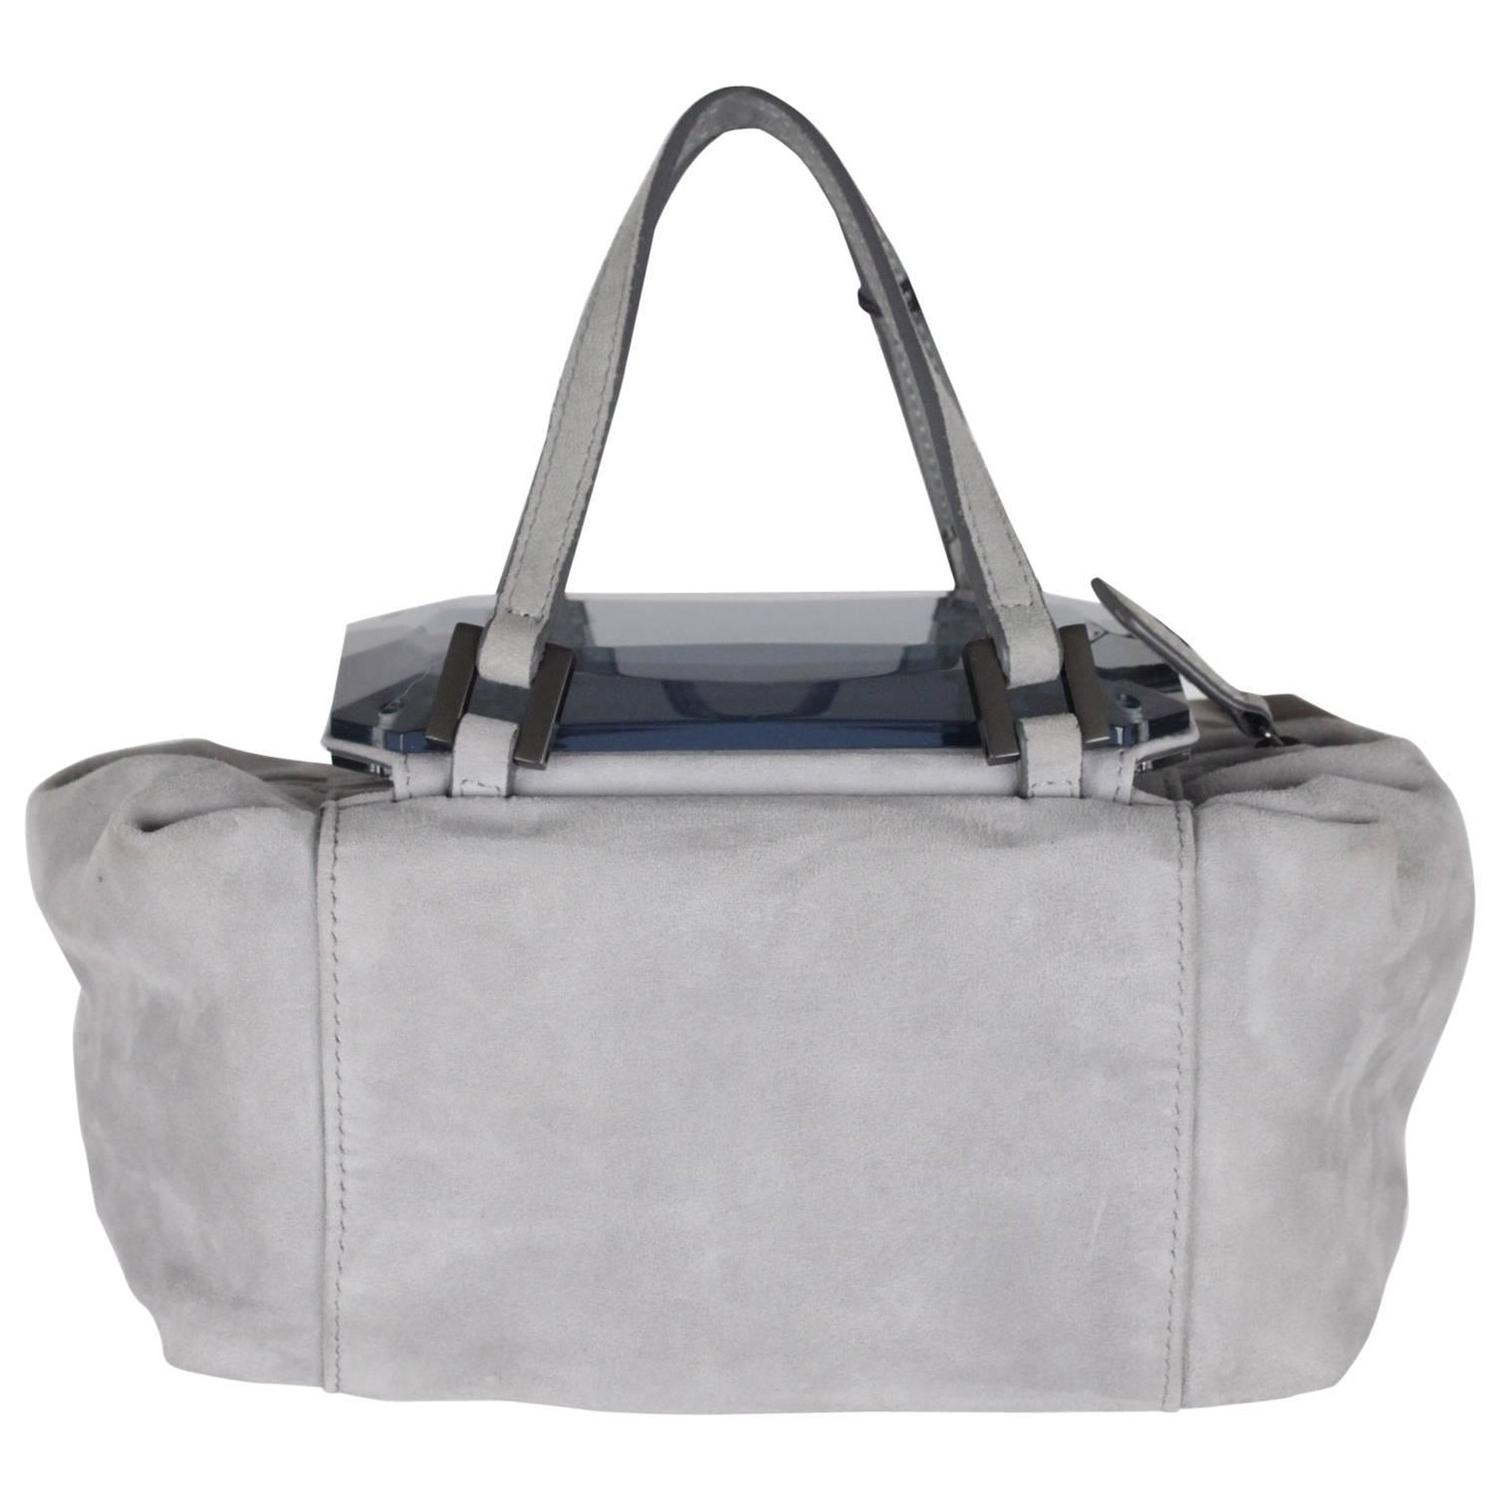 4beb3f0ec2 ... sweden fendi gray grey suede to you bag mini duffle mirrored handbag  for sale at 1stdibs real pre owned ...